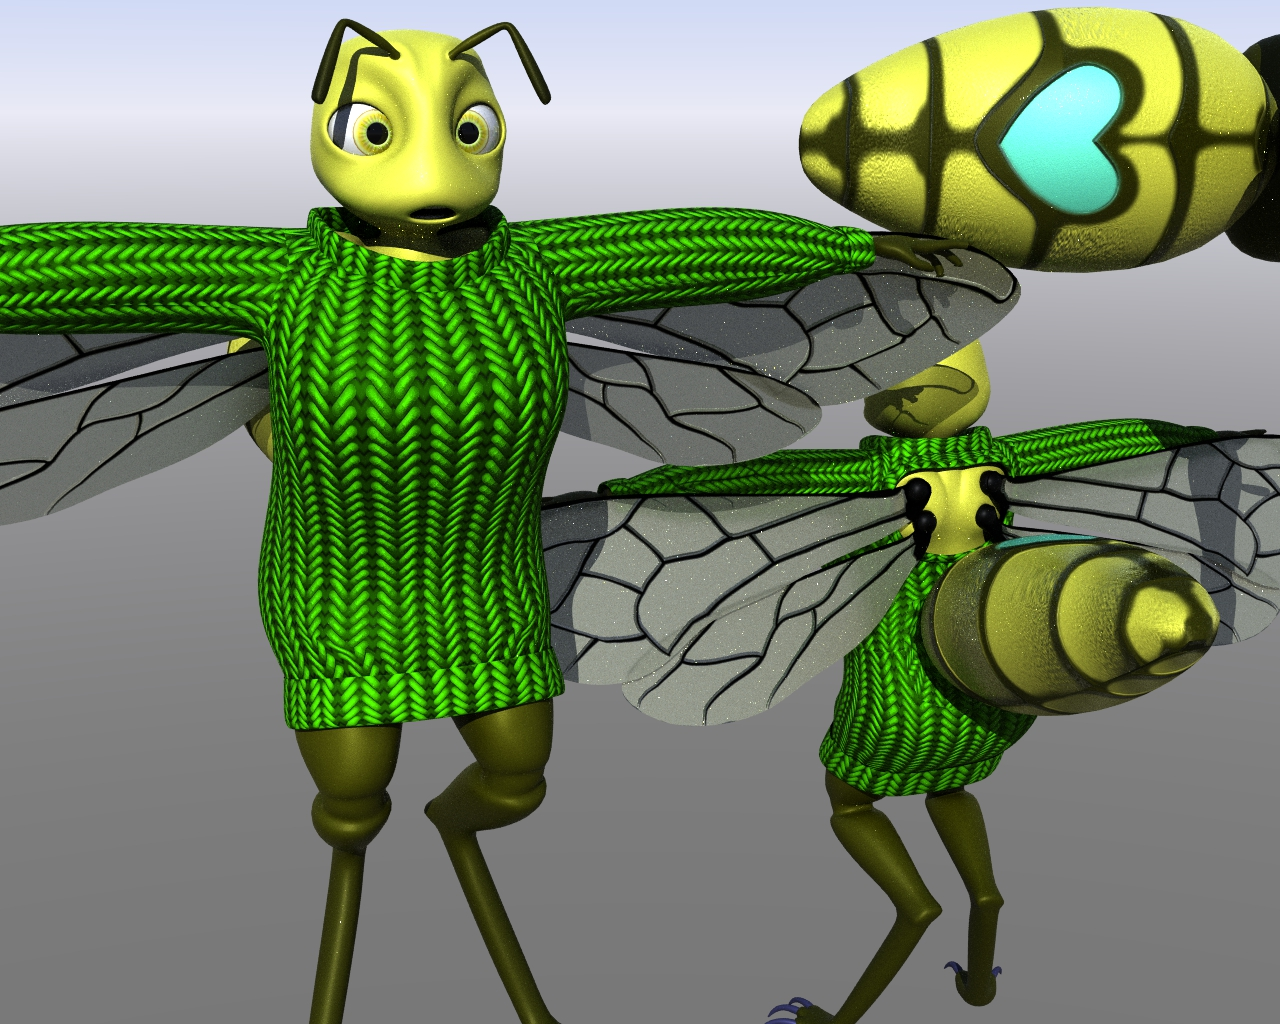 Bee-Test-Render.jpg